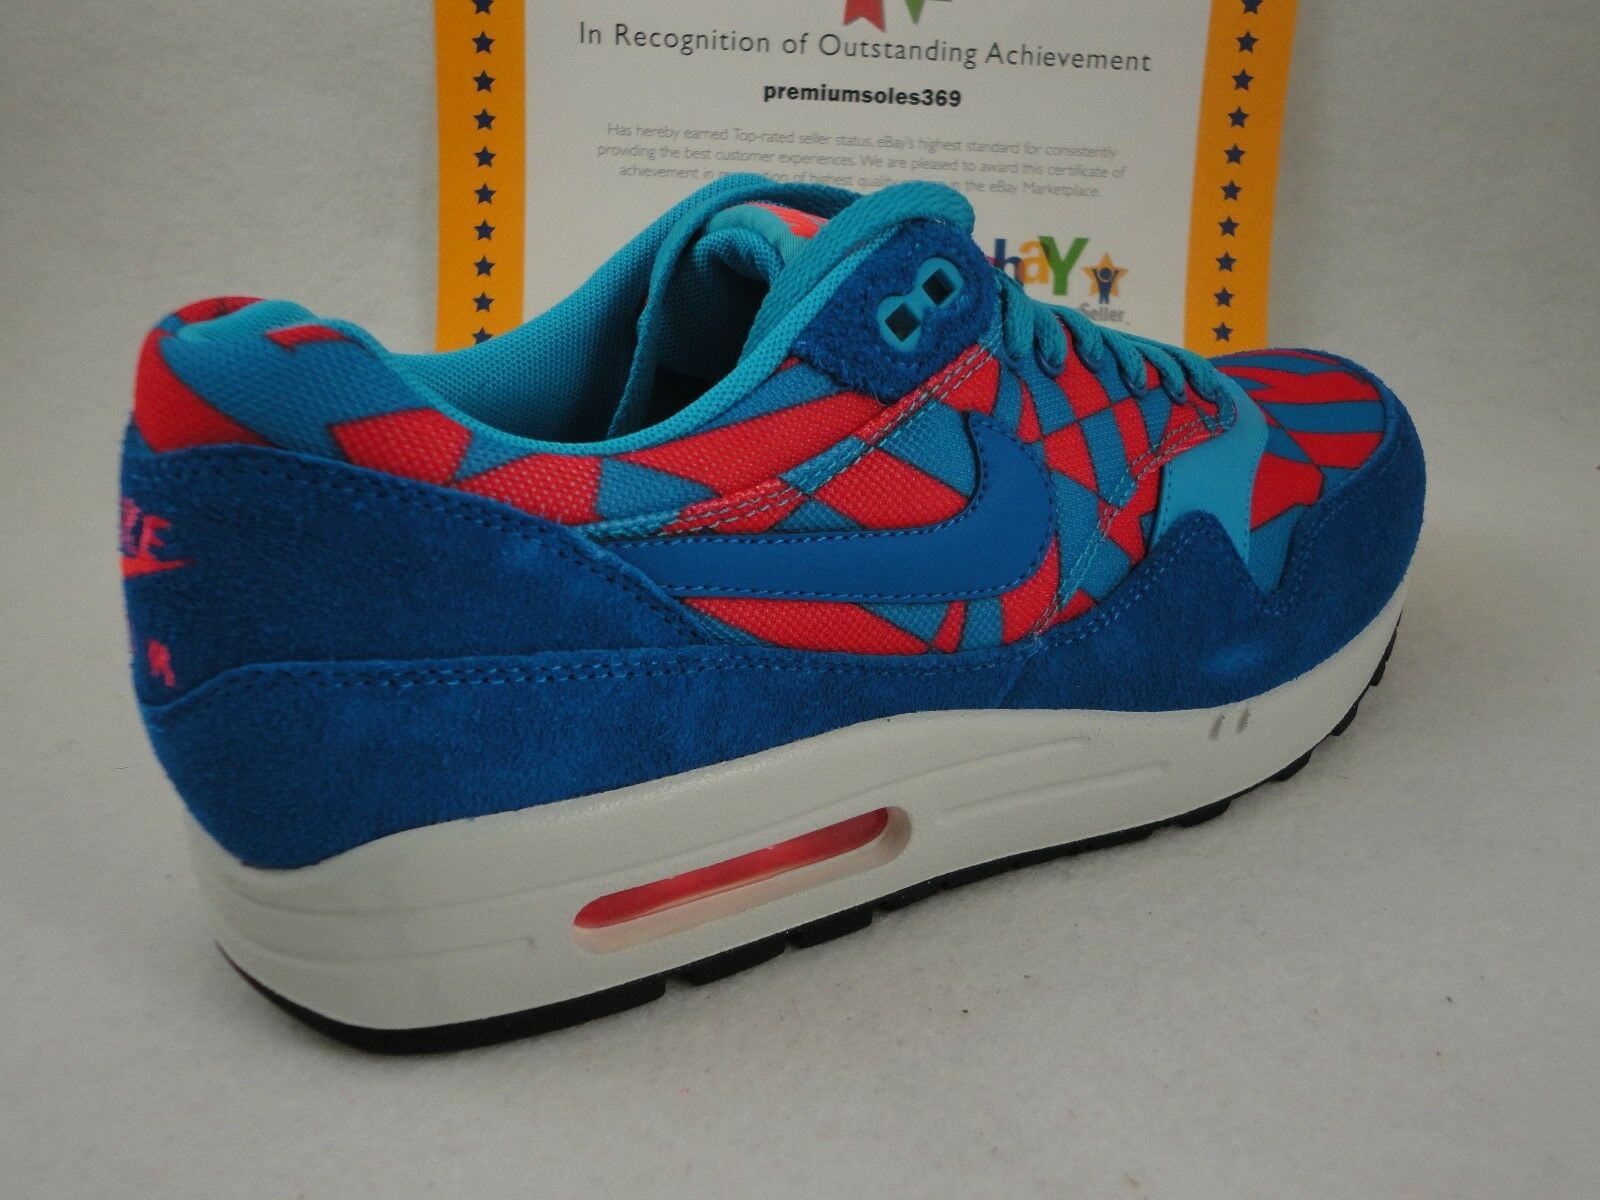 Nike Air Max 1 GPX, bluee Lagoon   Bright Crimson, Suede, DS Size 9.5